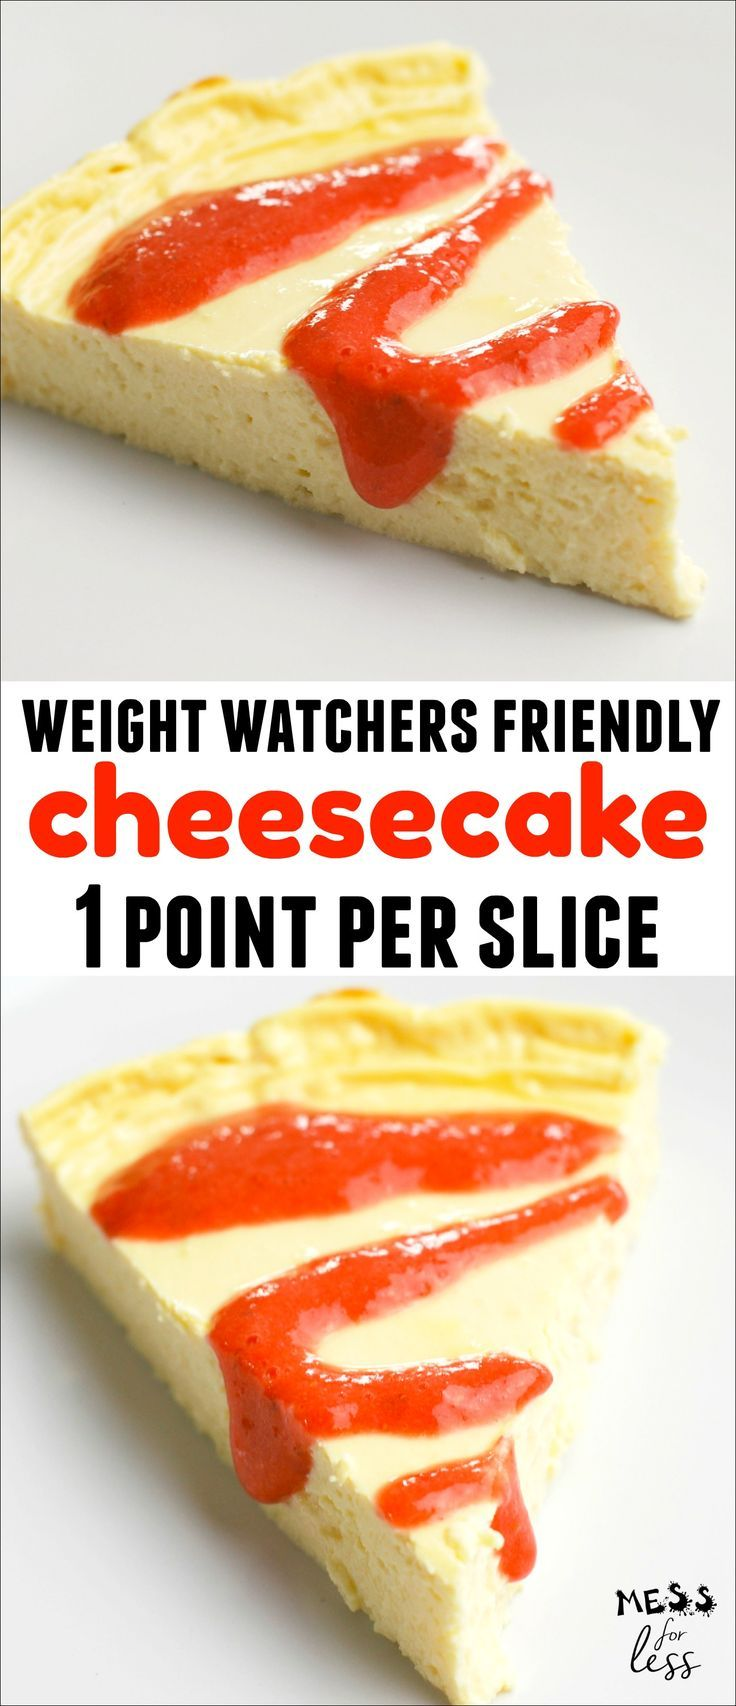 This One Point Cheesecake is delicious and creamy and just one point per slice. Only 4 points for the entire cake on the Weight Watchers Freestyle plan. You can add a fresh strawberry topping for no additional points. Wonderful low point dessert!